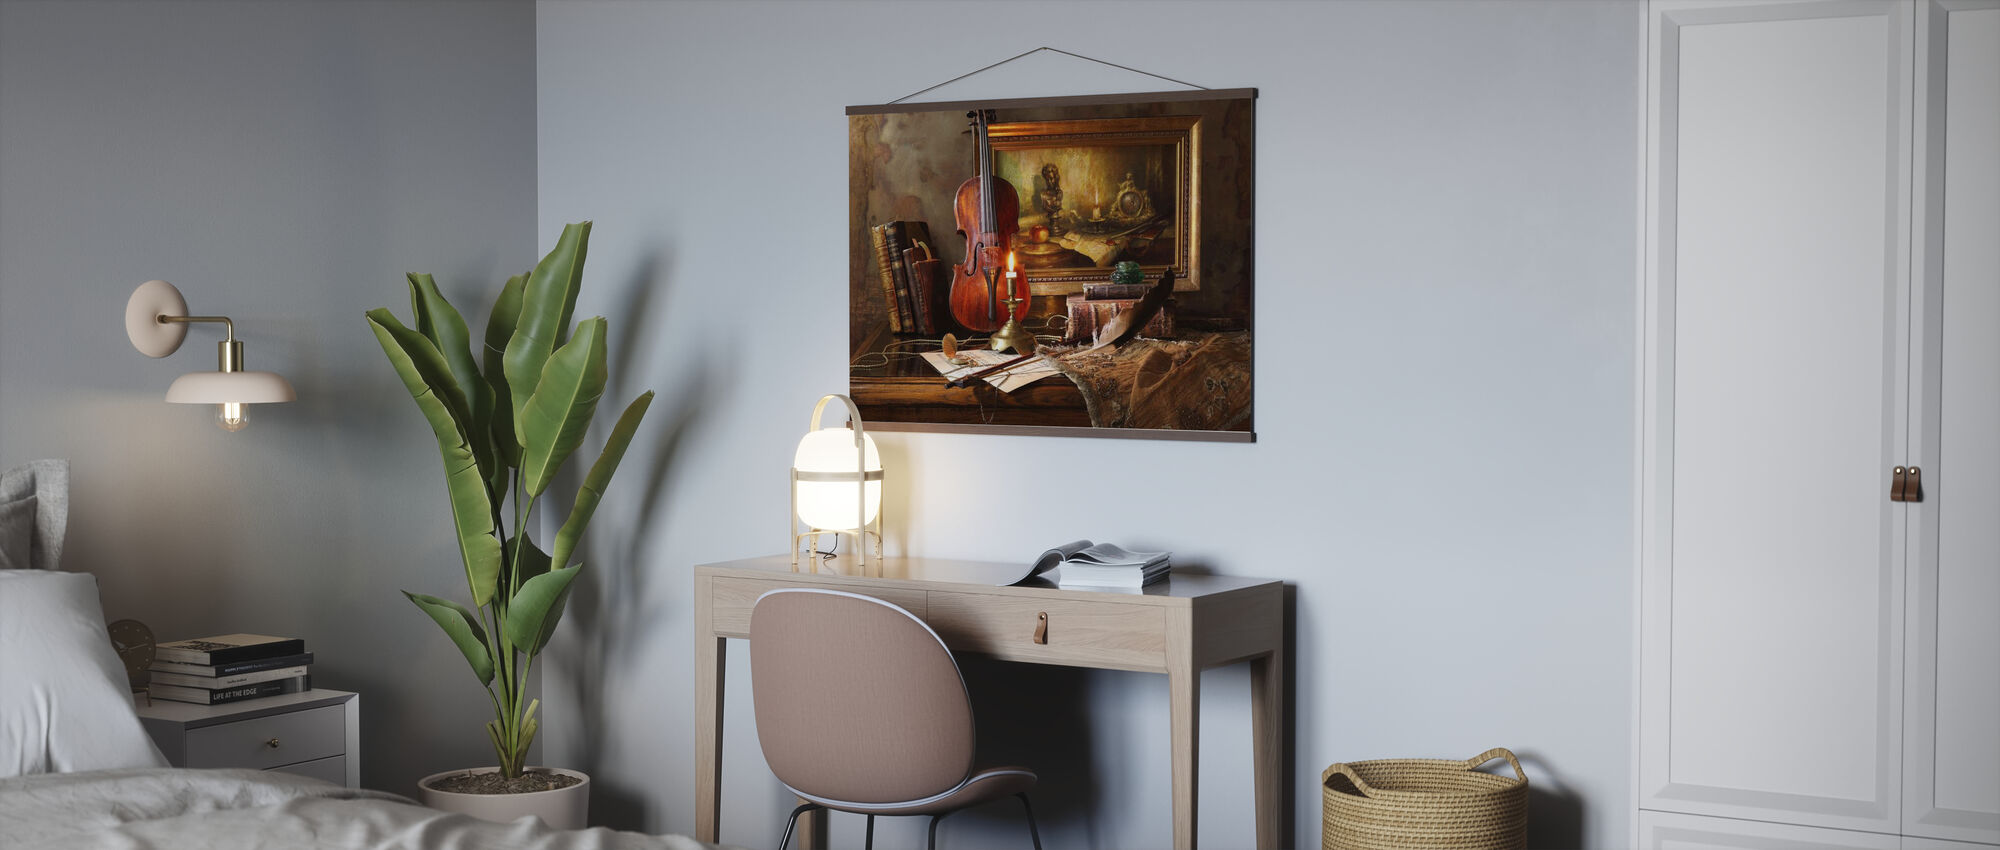 Still Life with Violin and Painting - Poster - Office